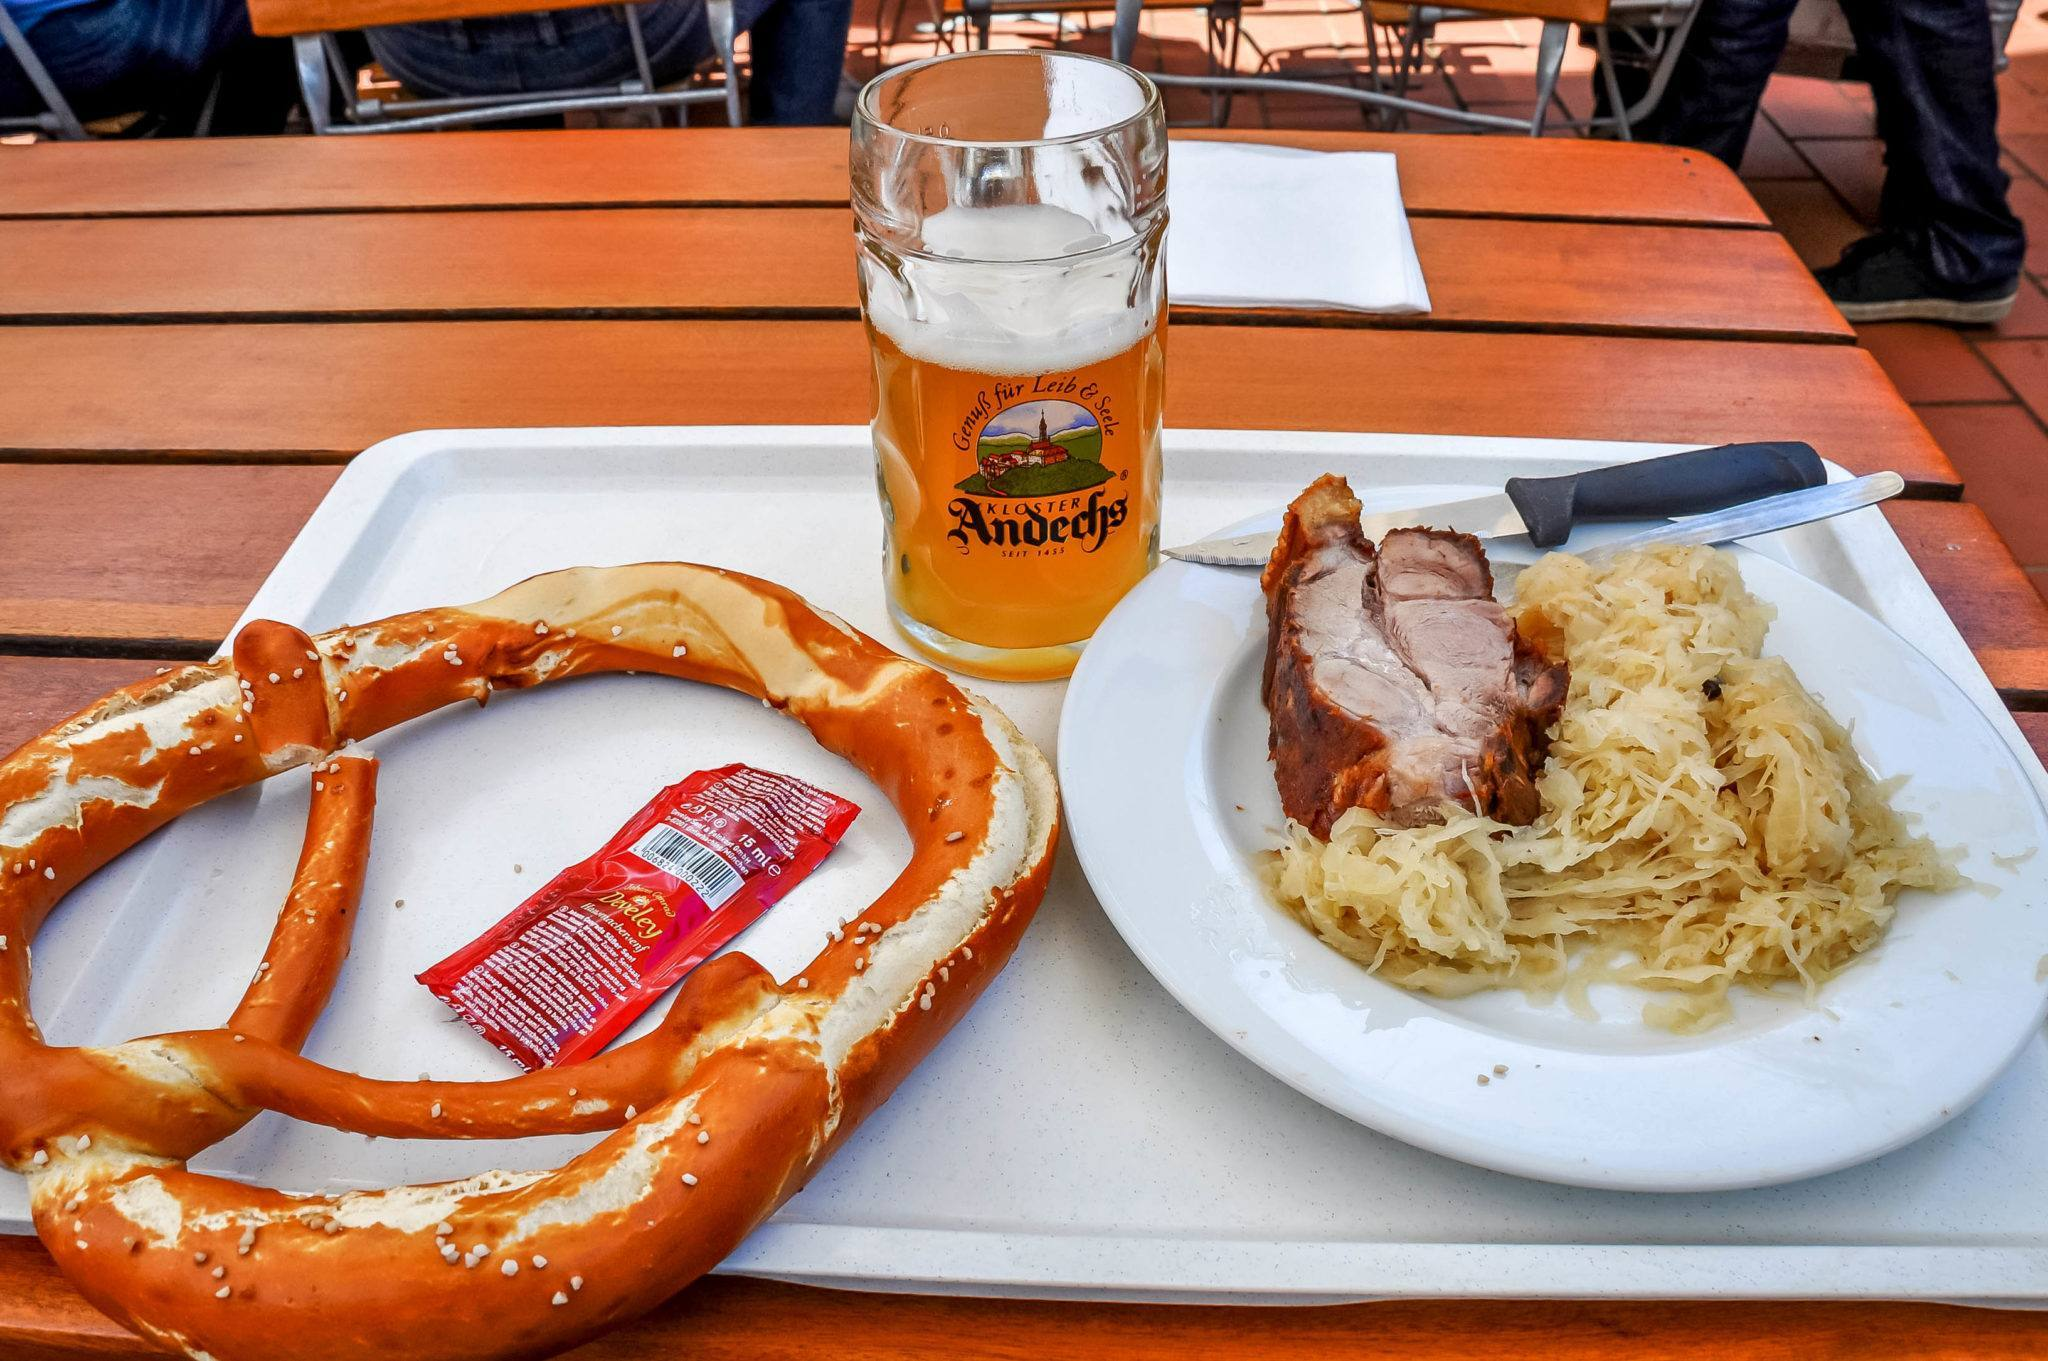 Pretzel, beer, sauerkraut, and pork lunch at Andechs monastery